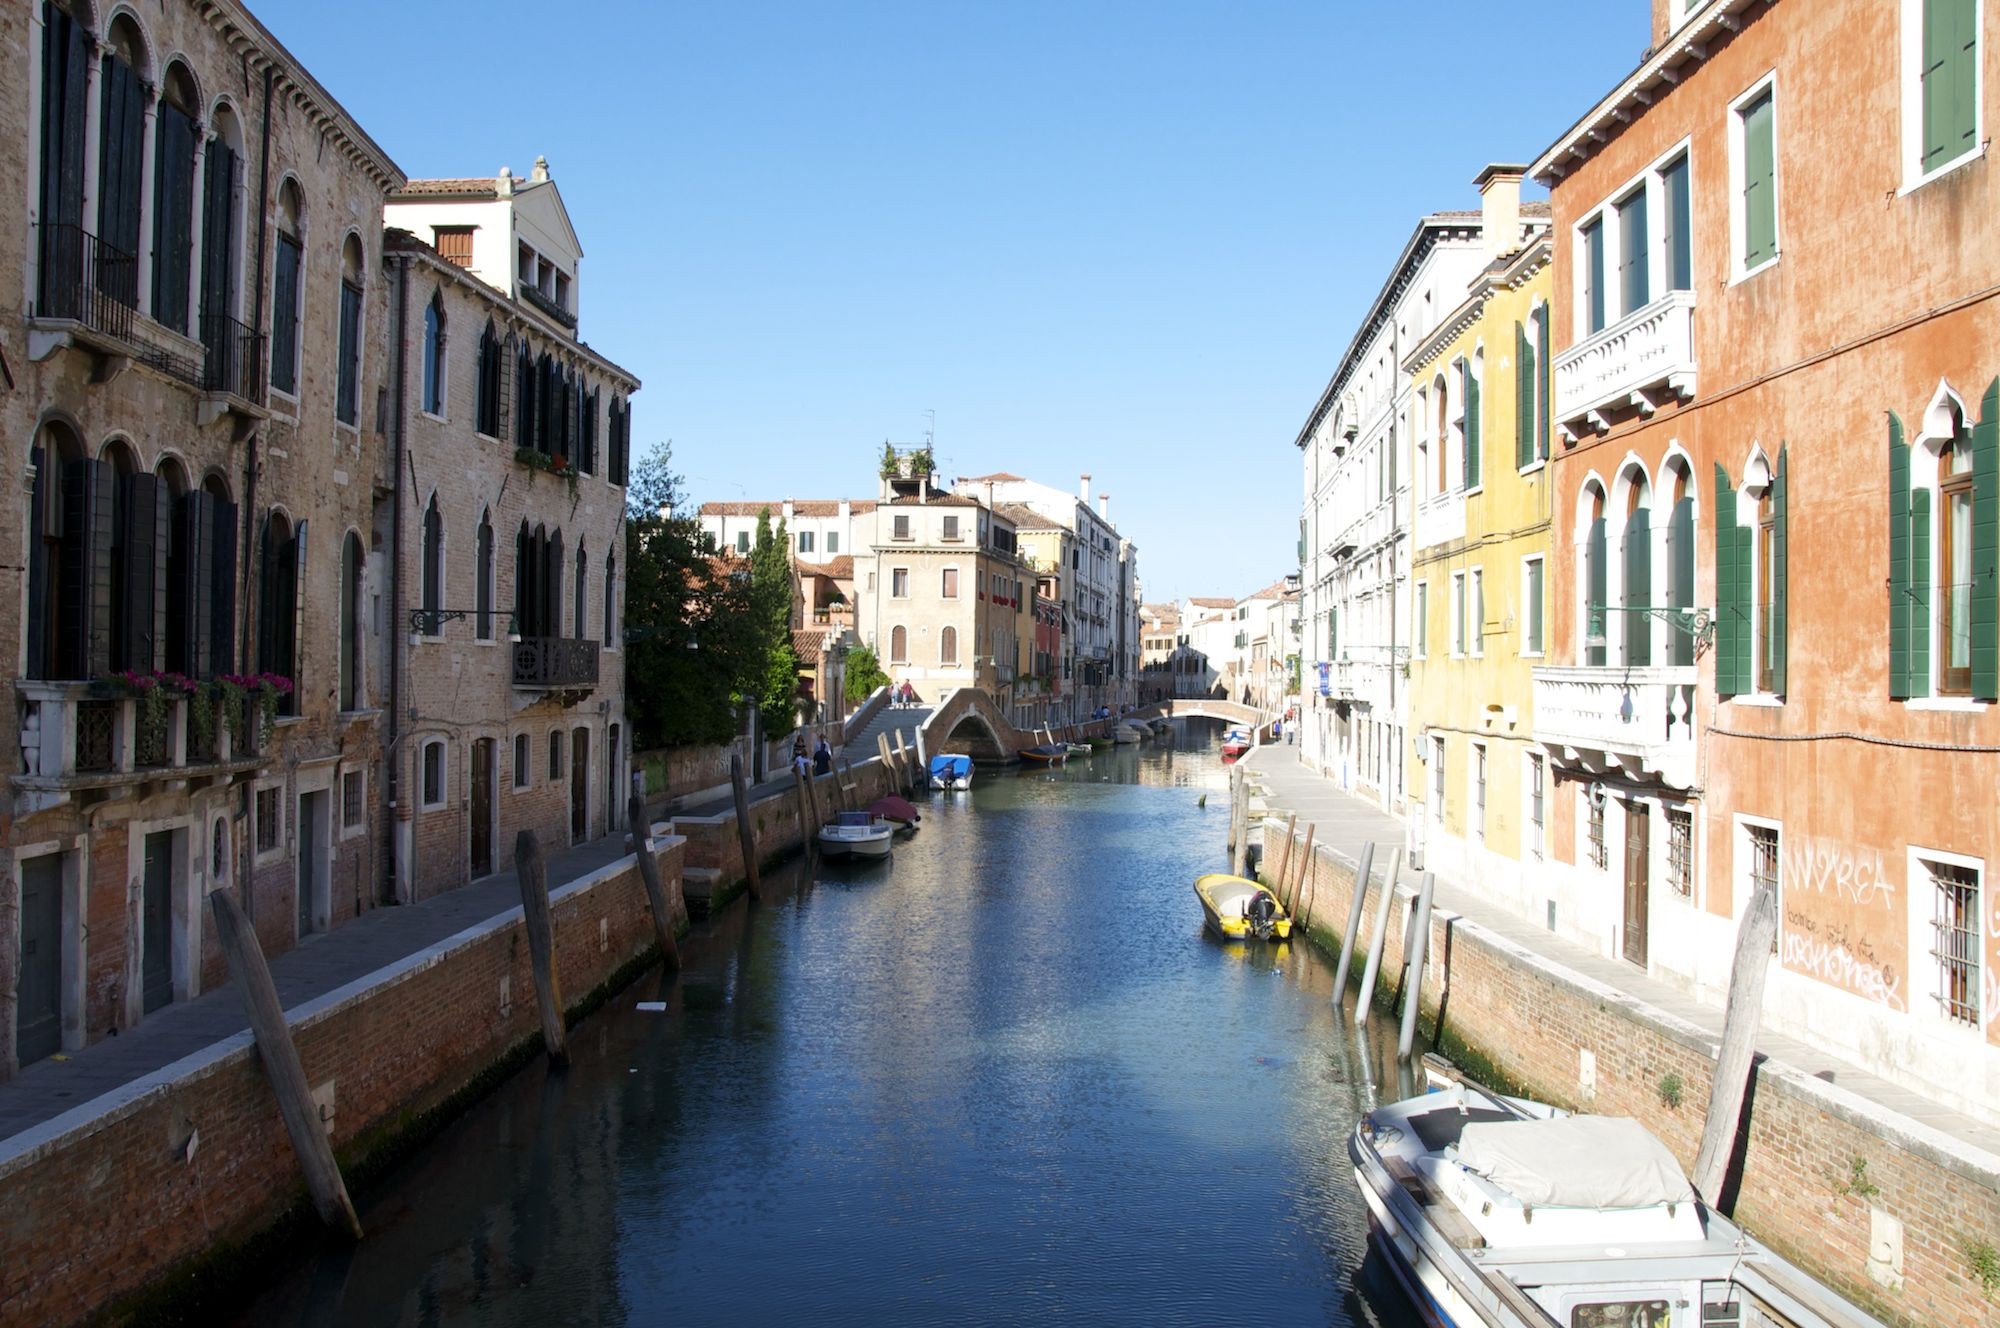 HiP Paris Blog tells you how to spend 48 hours in Venice